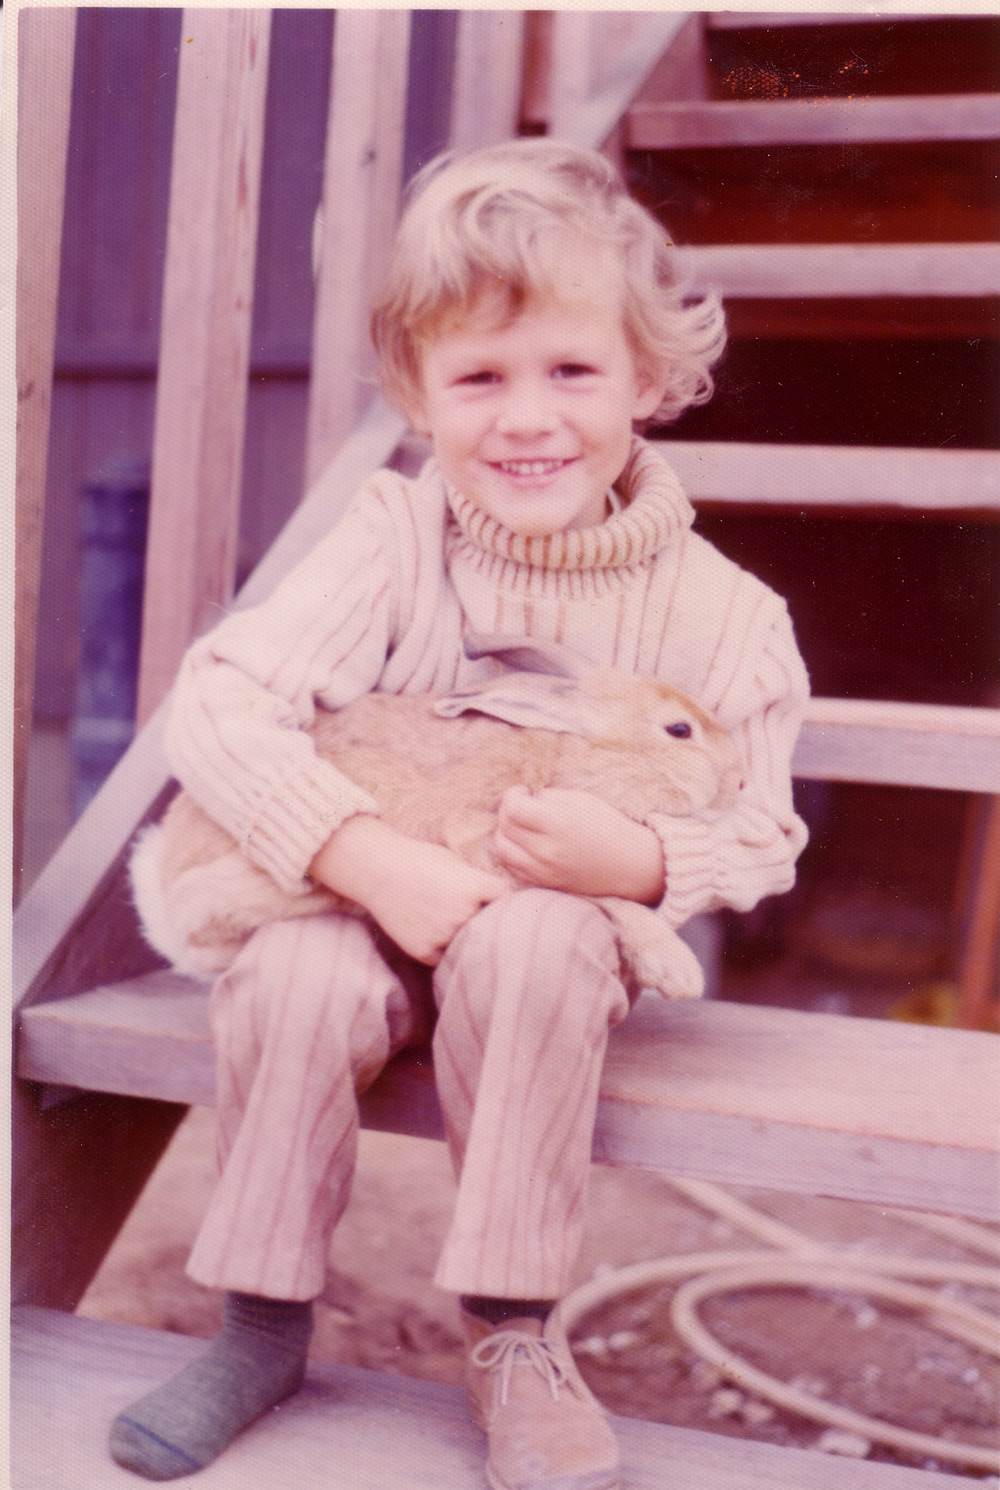 Roll-neck sweater. Stripped pants. Rabbit prop. Two shoes?